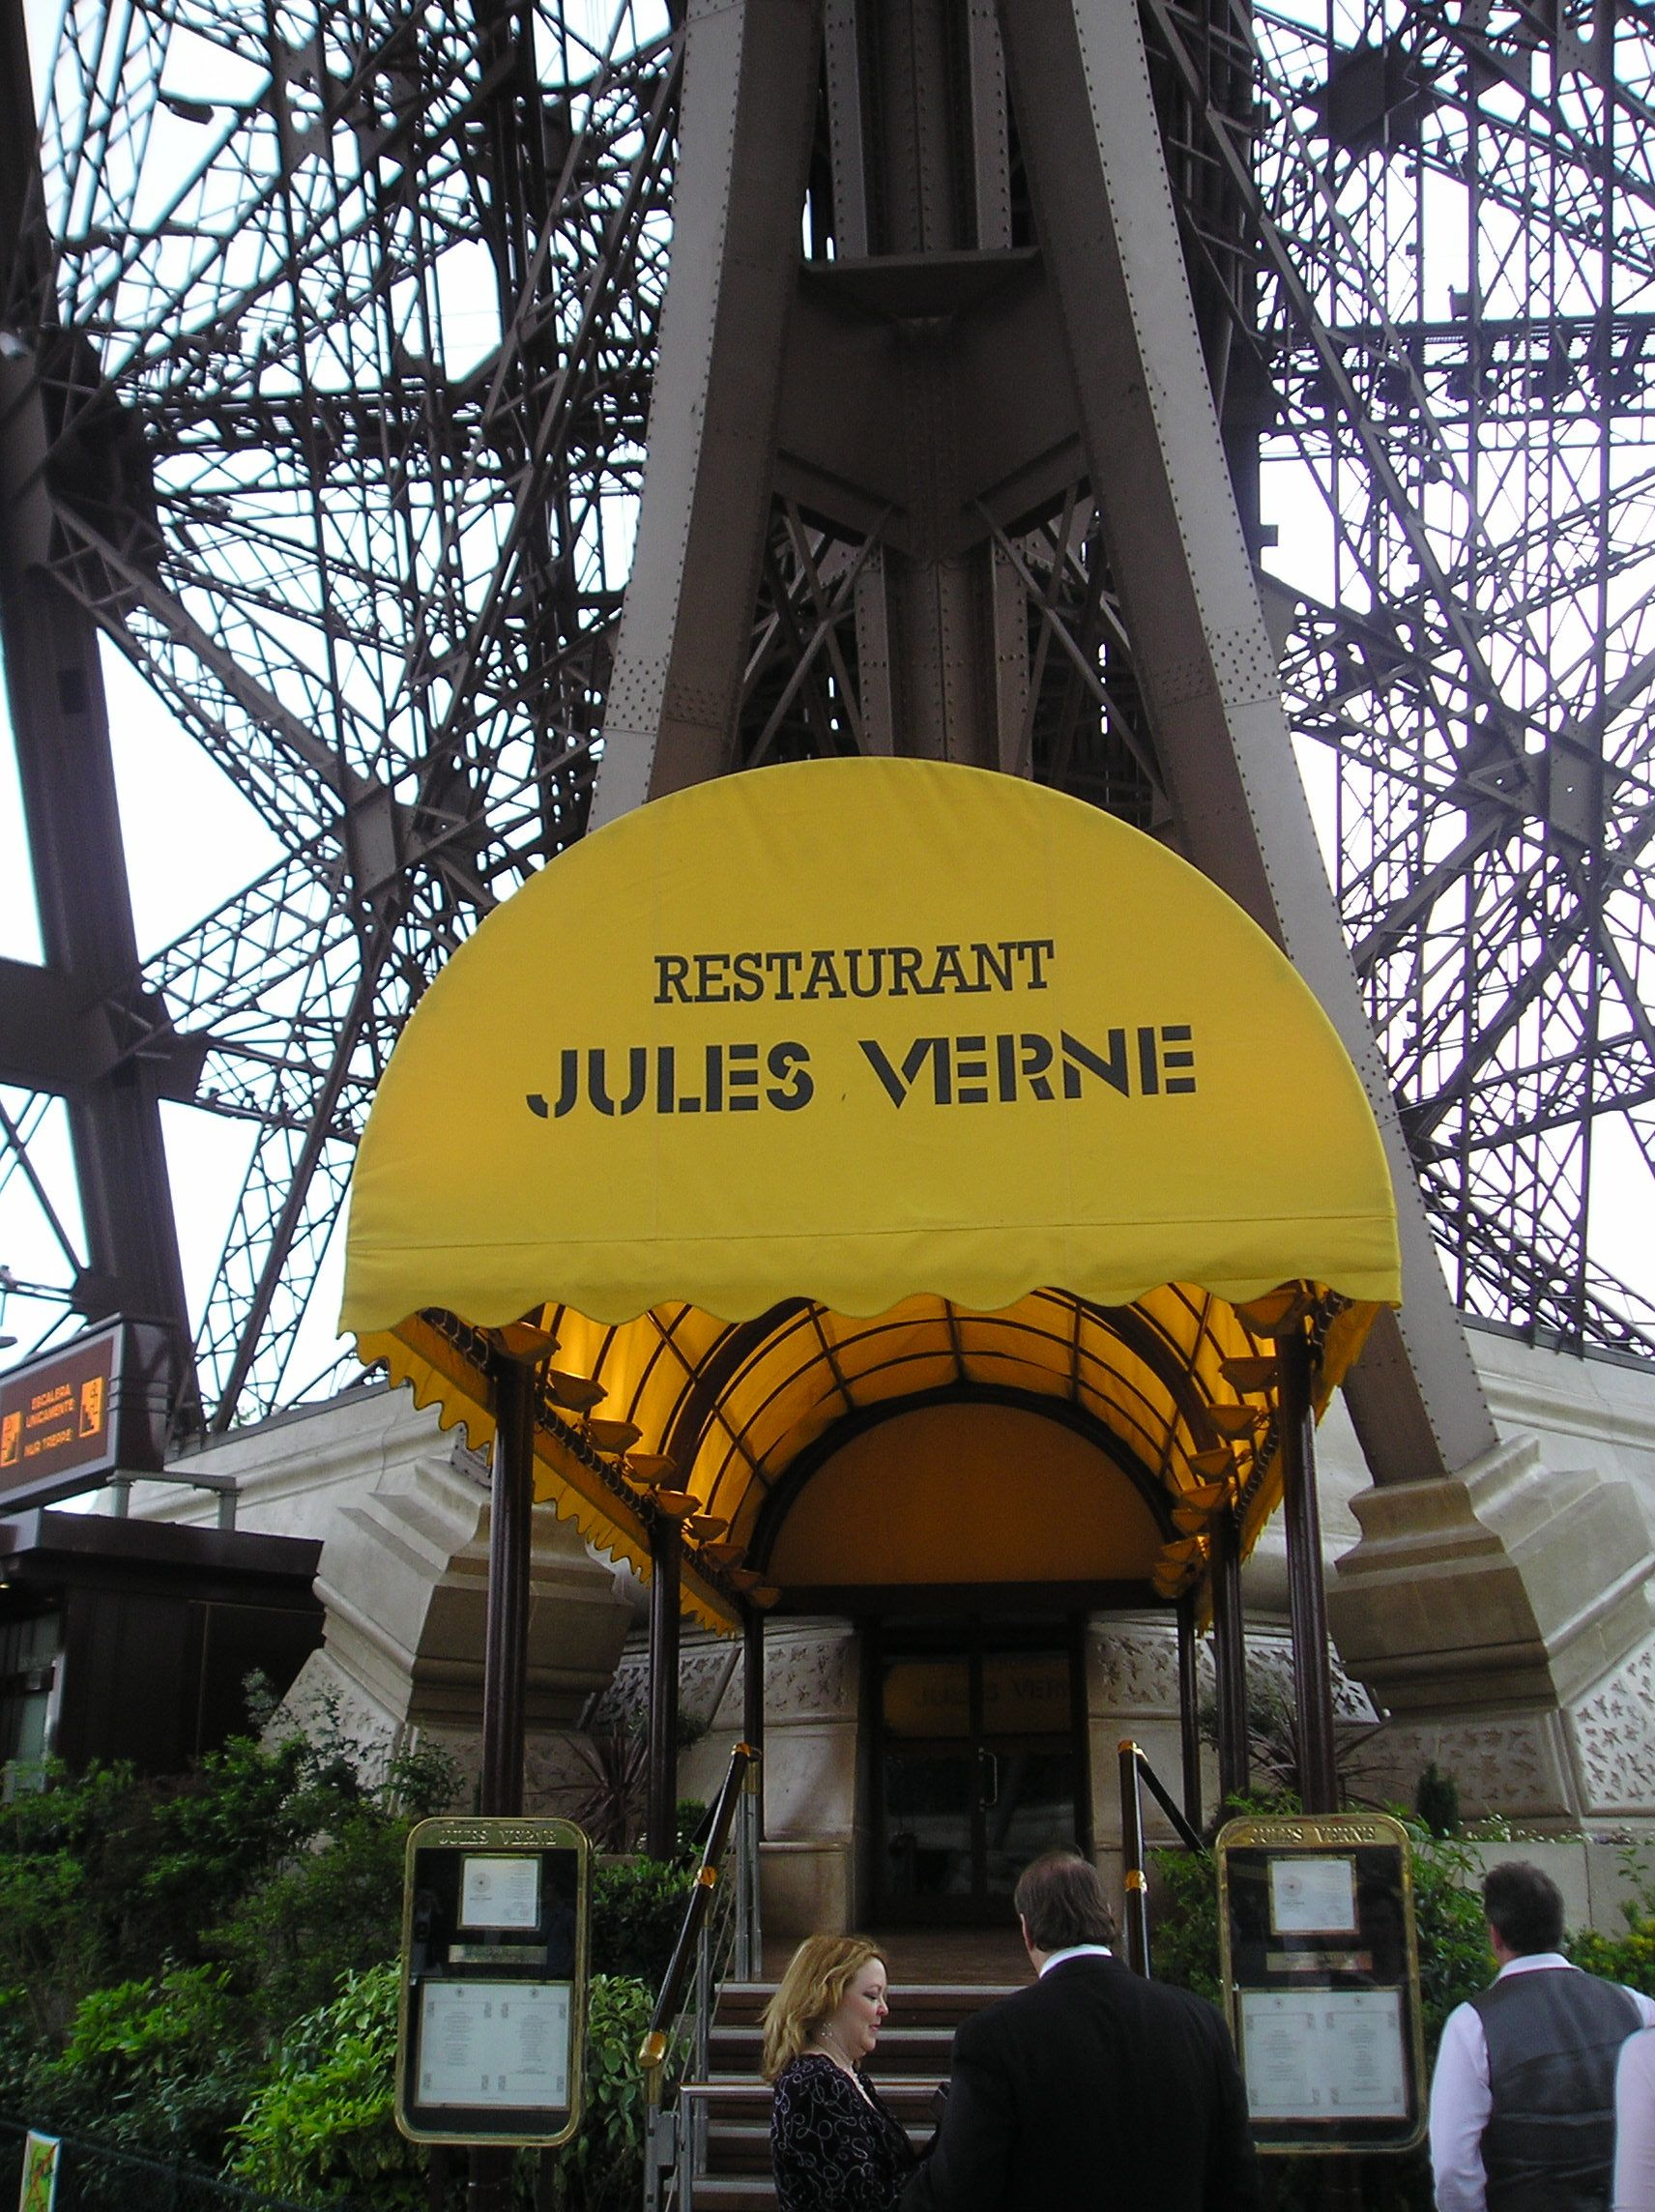 Eating dinner in the famous Eiffel Tower